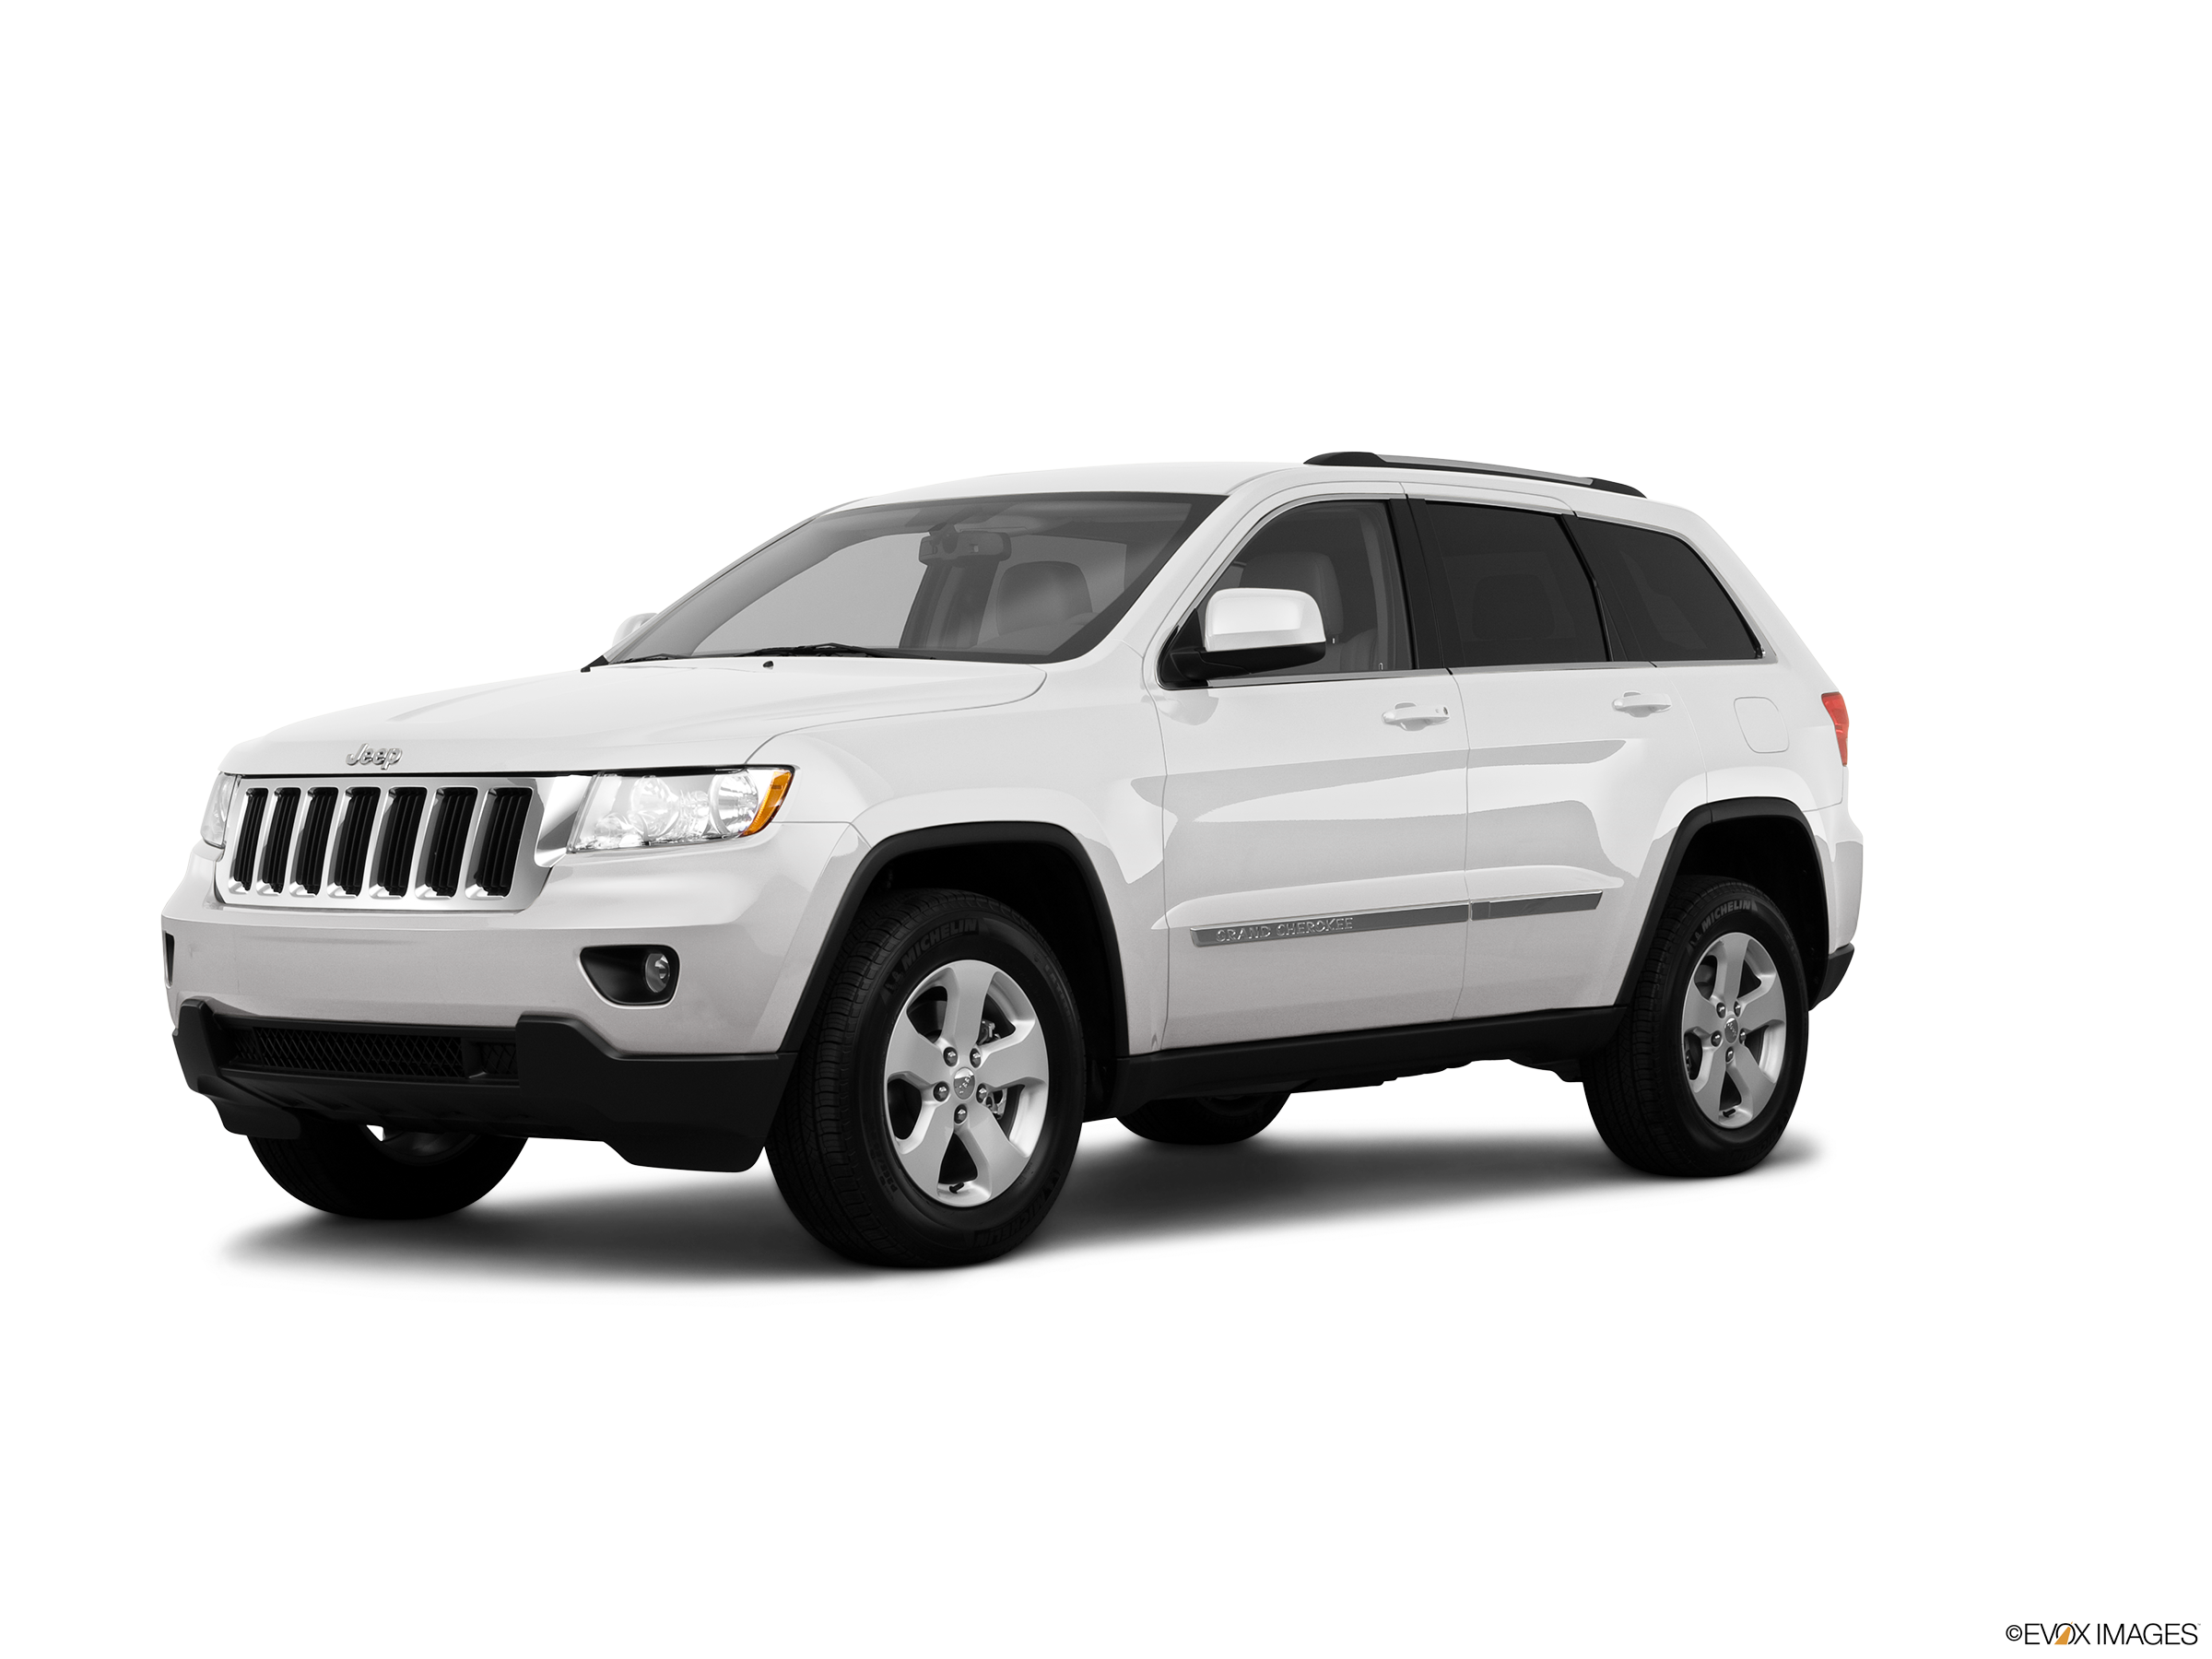 2011 Jeep Grand Cherokee Values Cars For Sale Kelley Blue Book